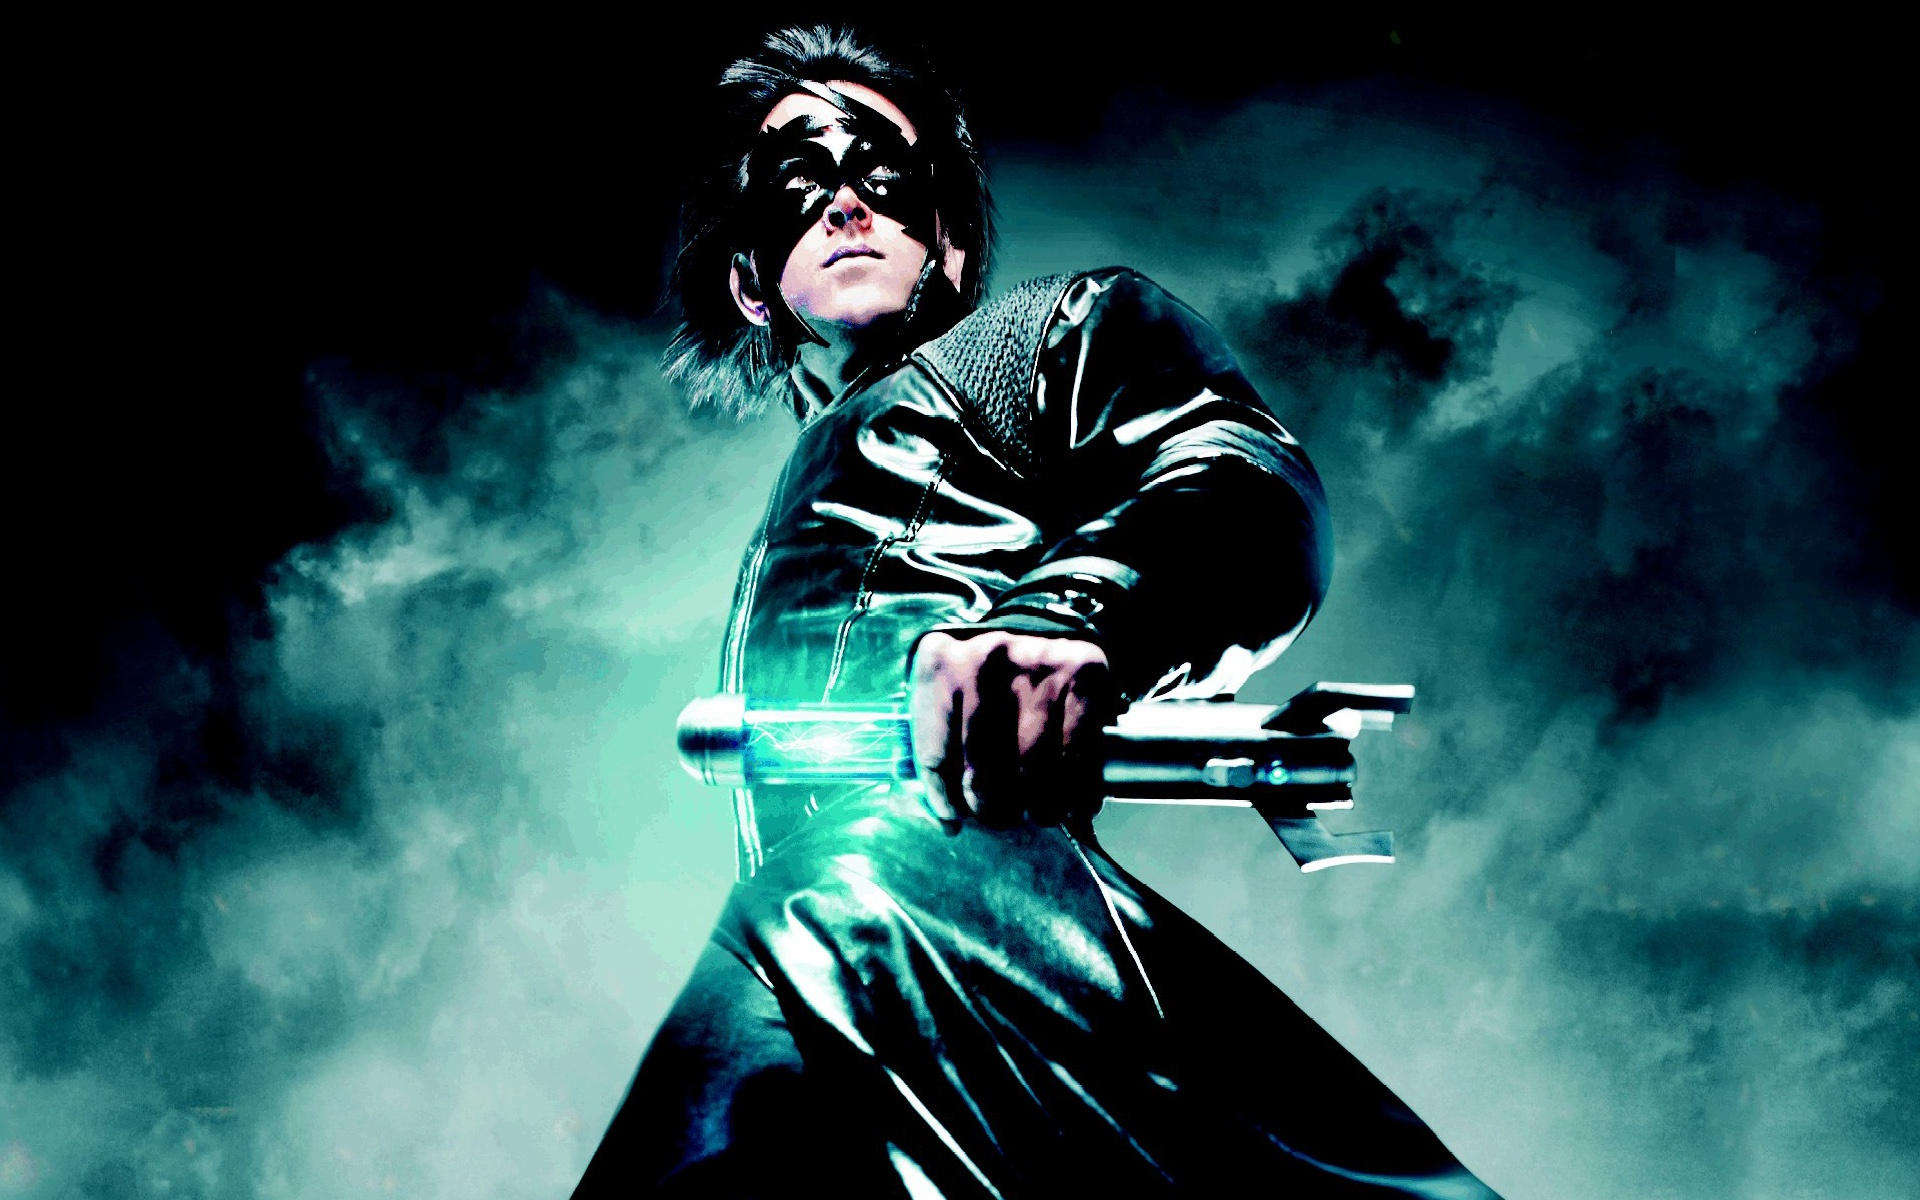 Krrish 3 Movie Wallpapers In Jpg Format For Free Download